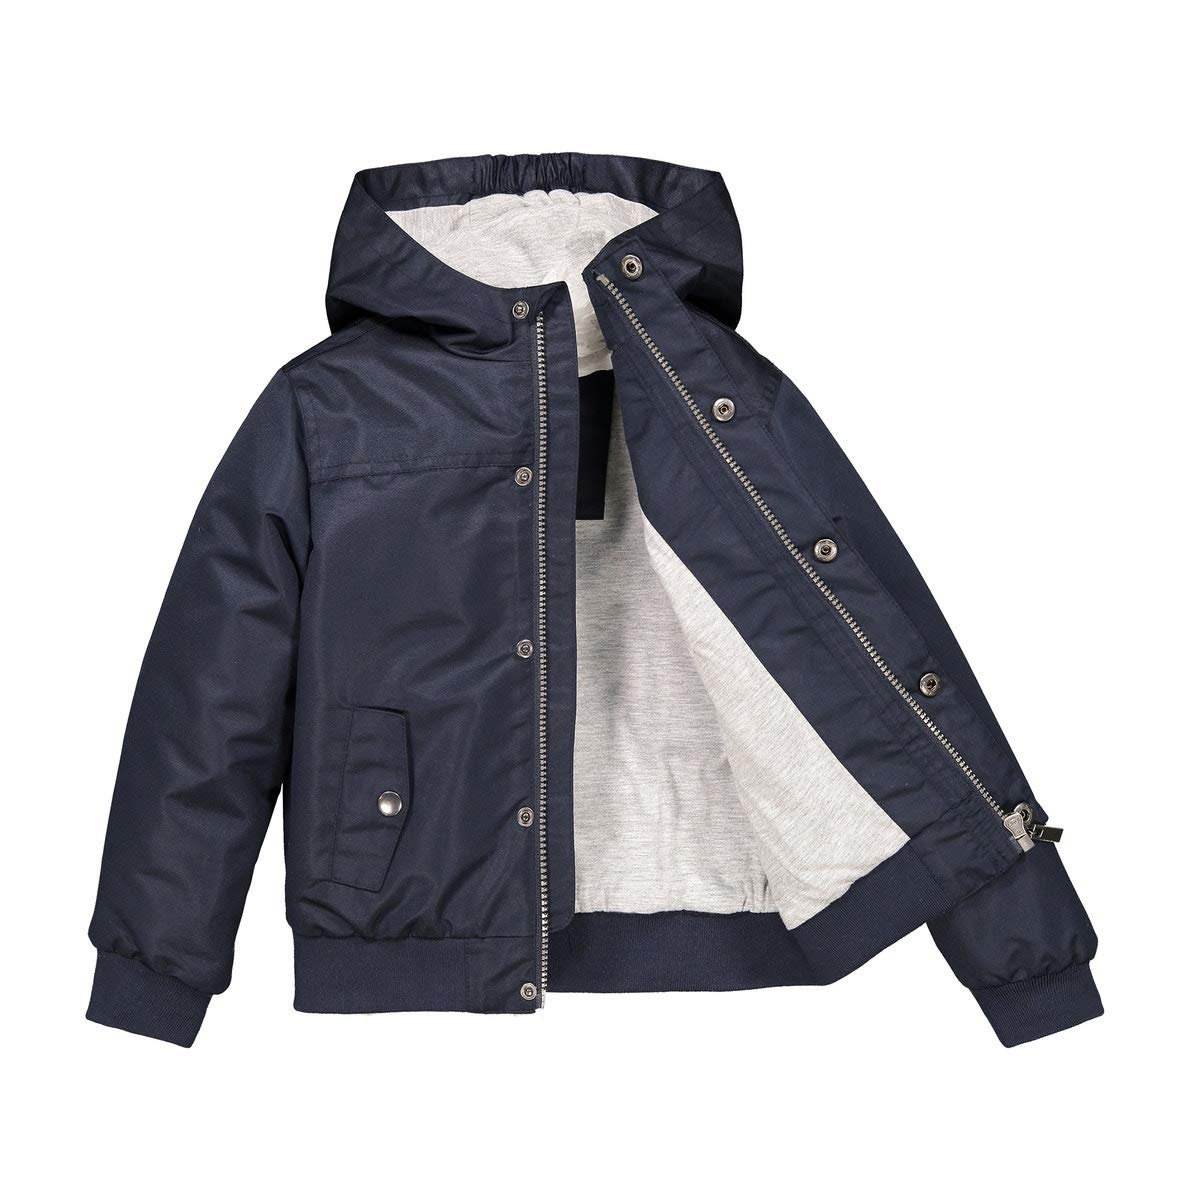 La Redoute Collections Hooded Jacket, 3-12 Years Blue Size 10 Years (138 cm)